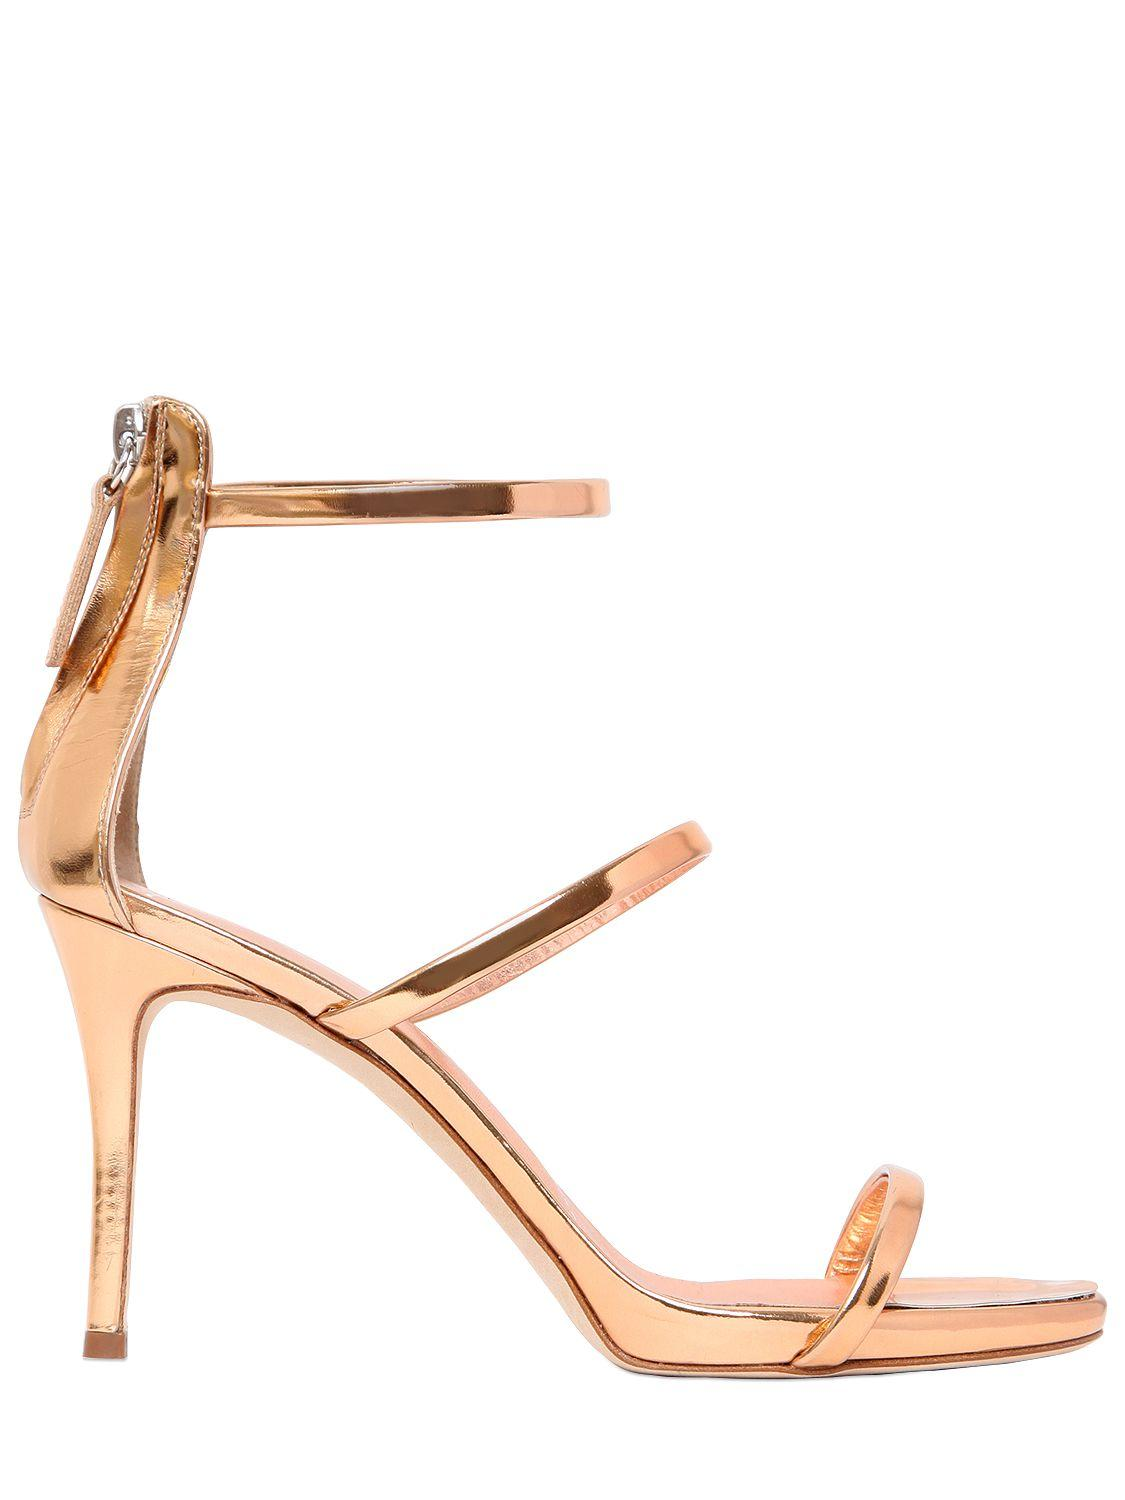 eccf95b75 ... hot lyst giuseppe zanotti harmony metallic leather sandals in metallic  0aab2 efb57